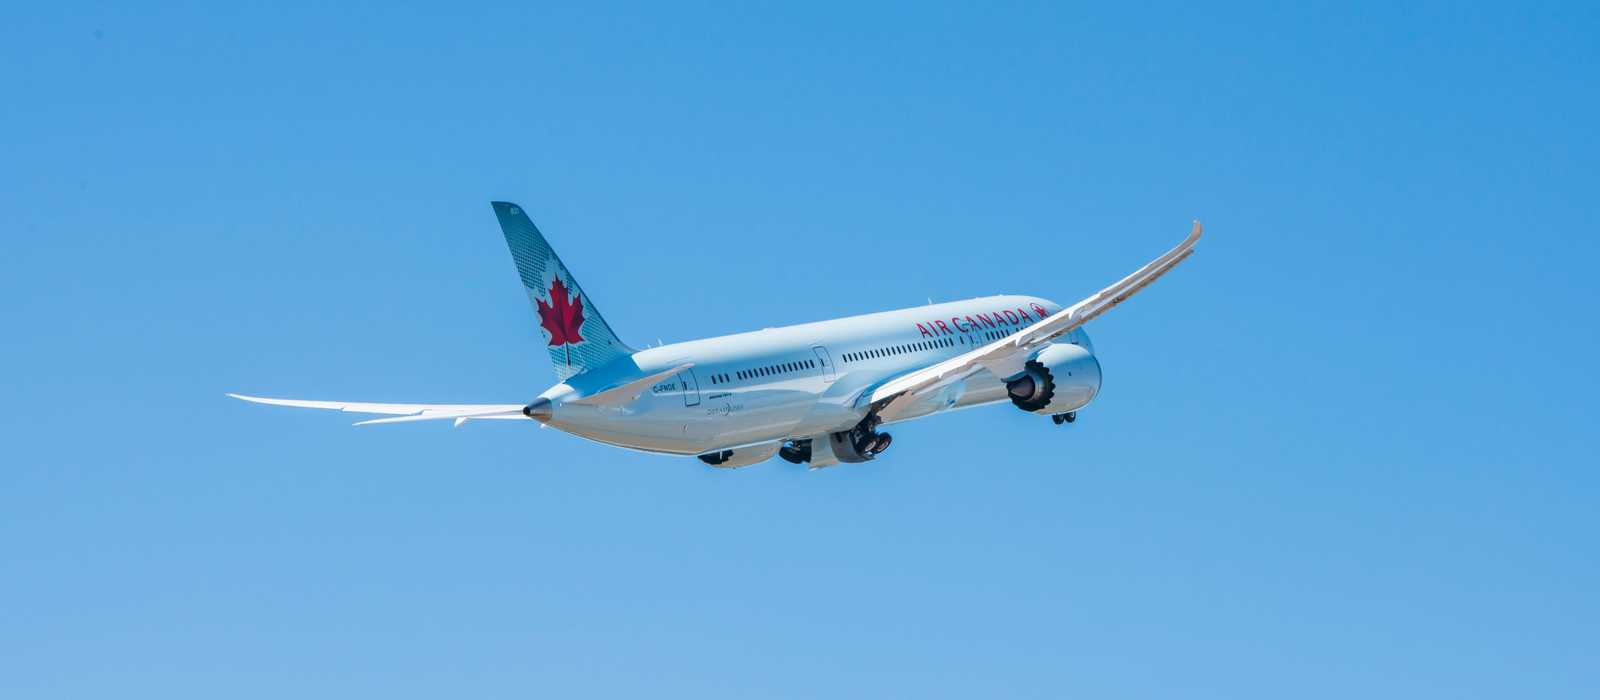 Air Canada Boeing 787-9 ready to take off